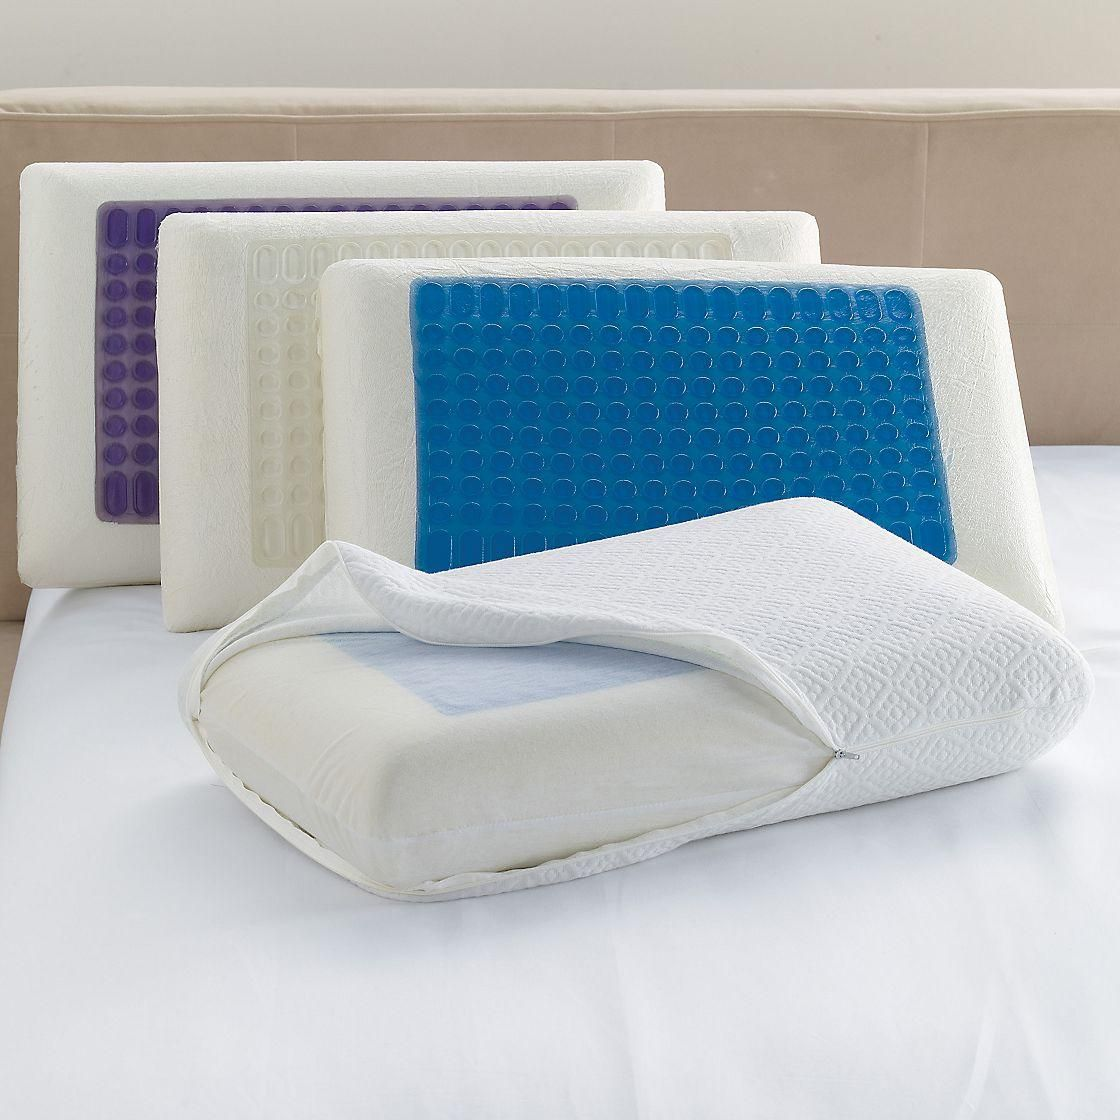 Cool Gel Top Memory Foam Pillow At The Company Store Bed Basics